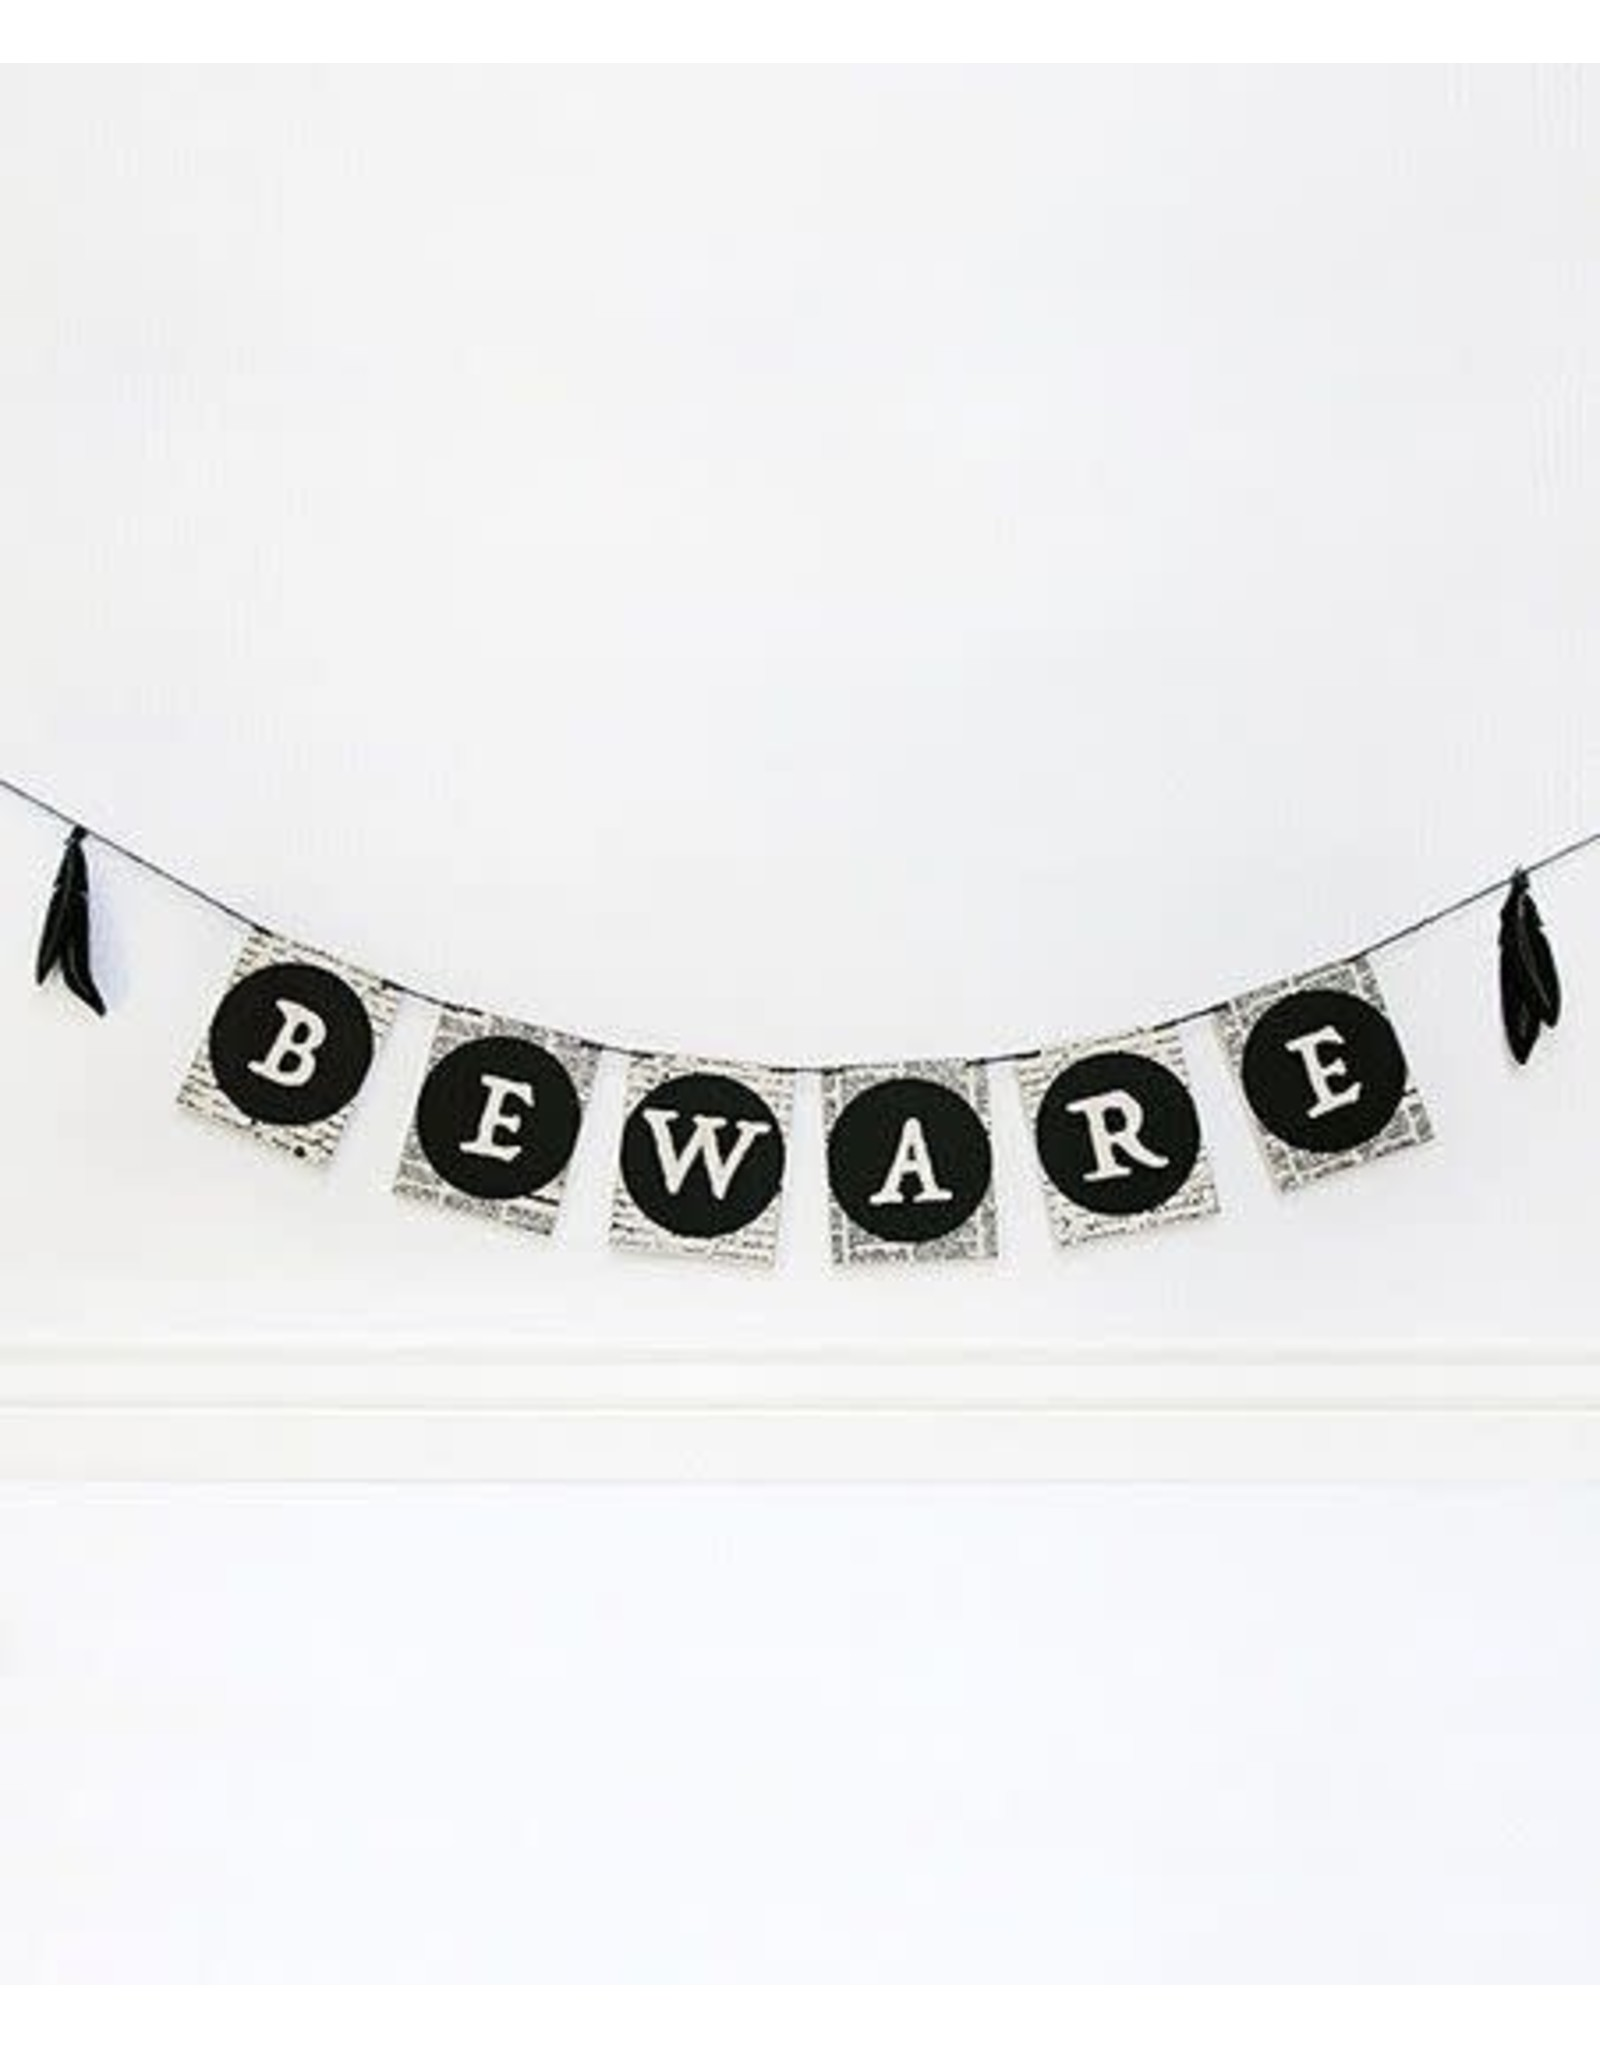 Adams & Co. Wood Banner With Feathers, (BEWARE), Black and White